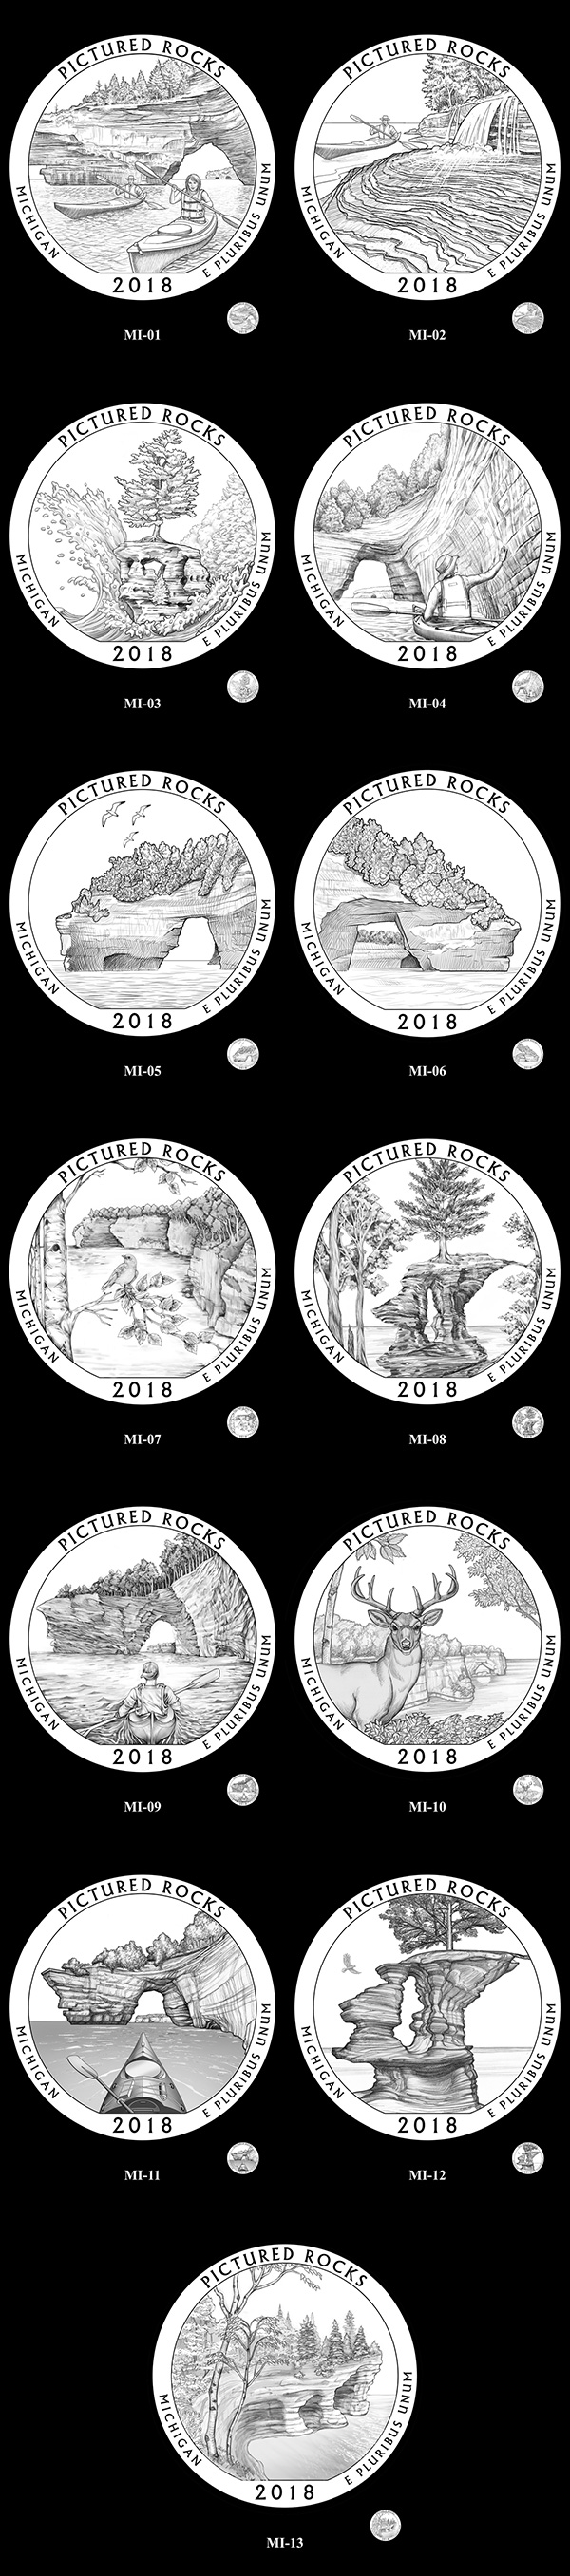 Candidate designs for new 2018 Pictured Rocks National Lakeshore Quarter